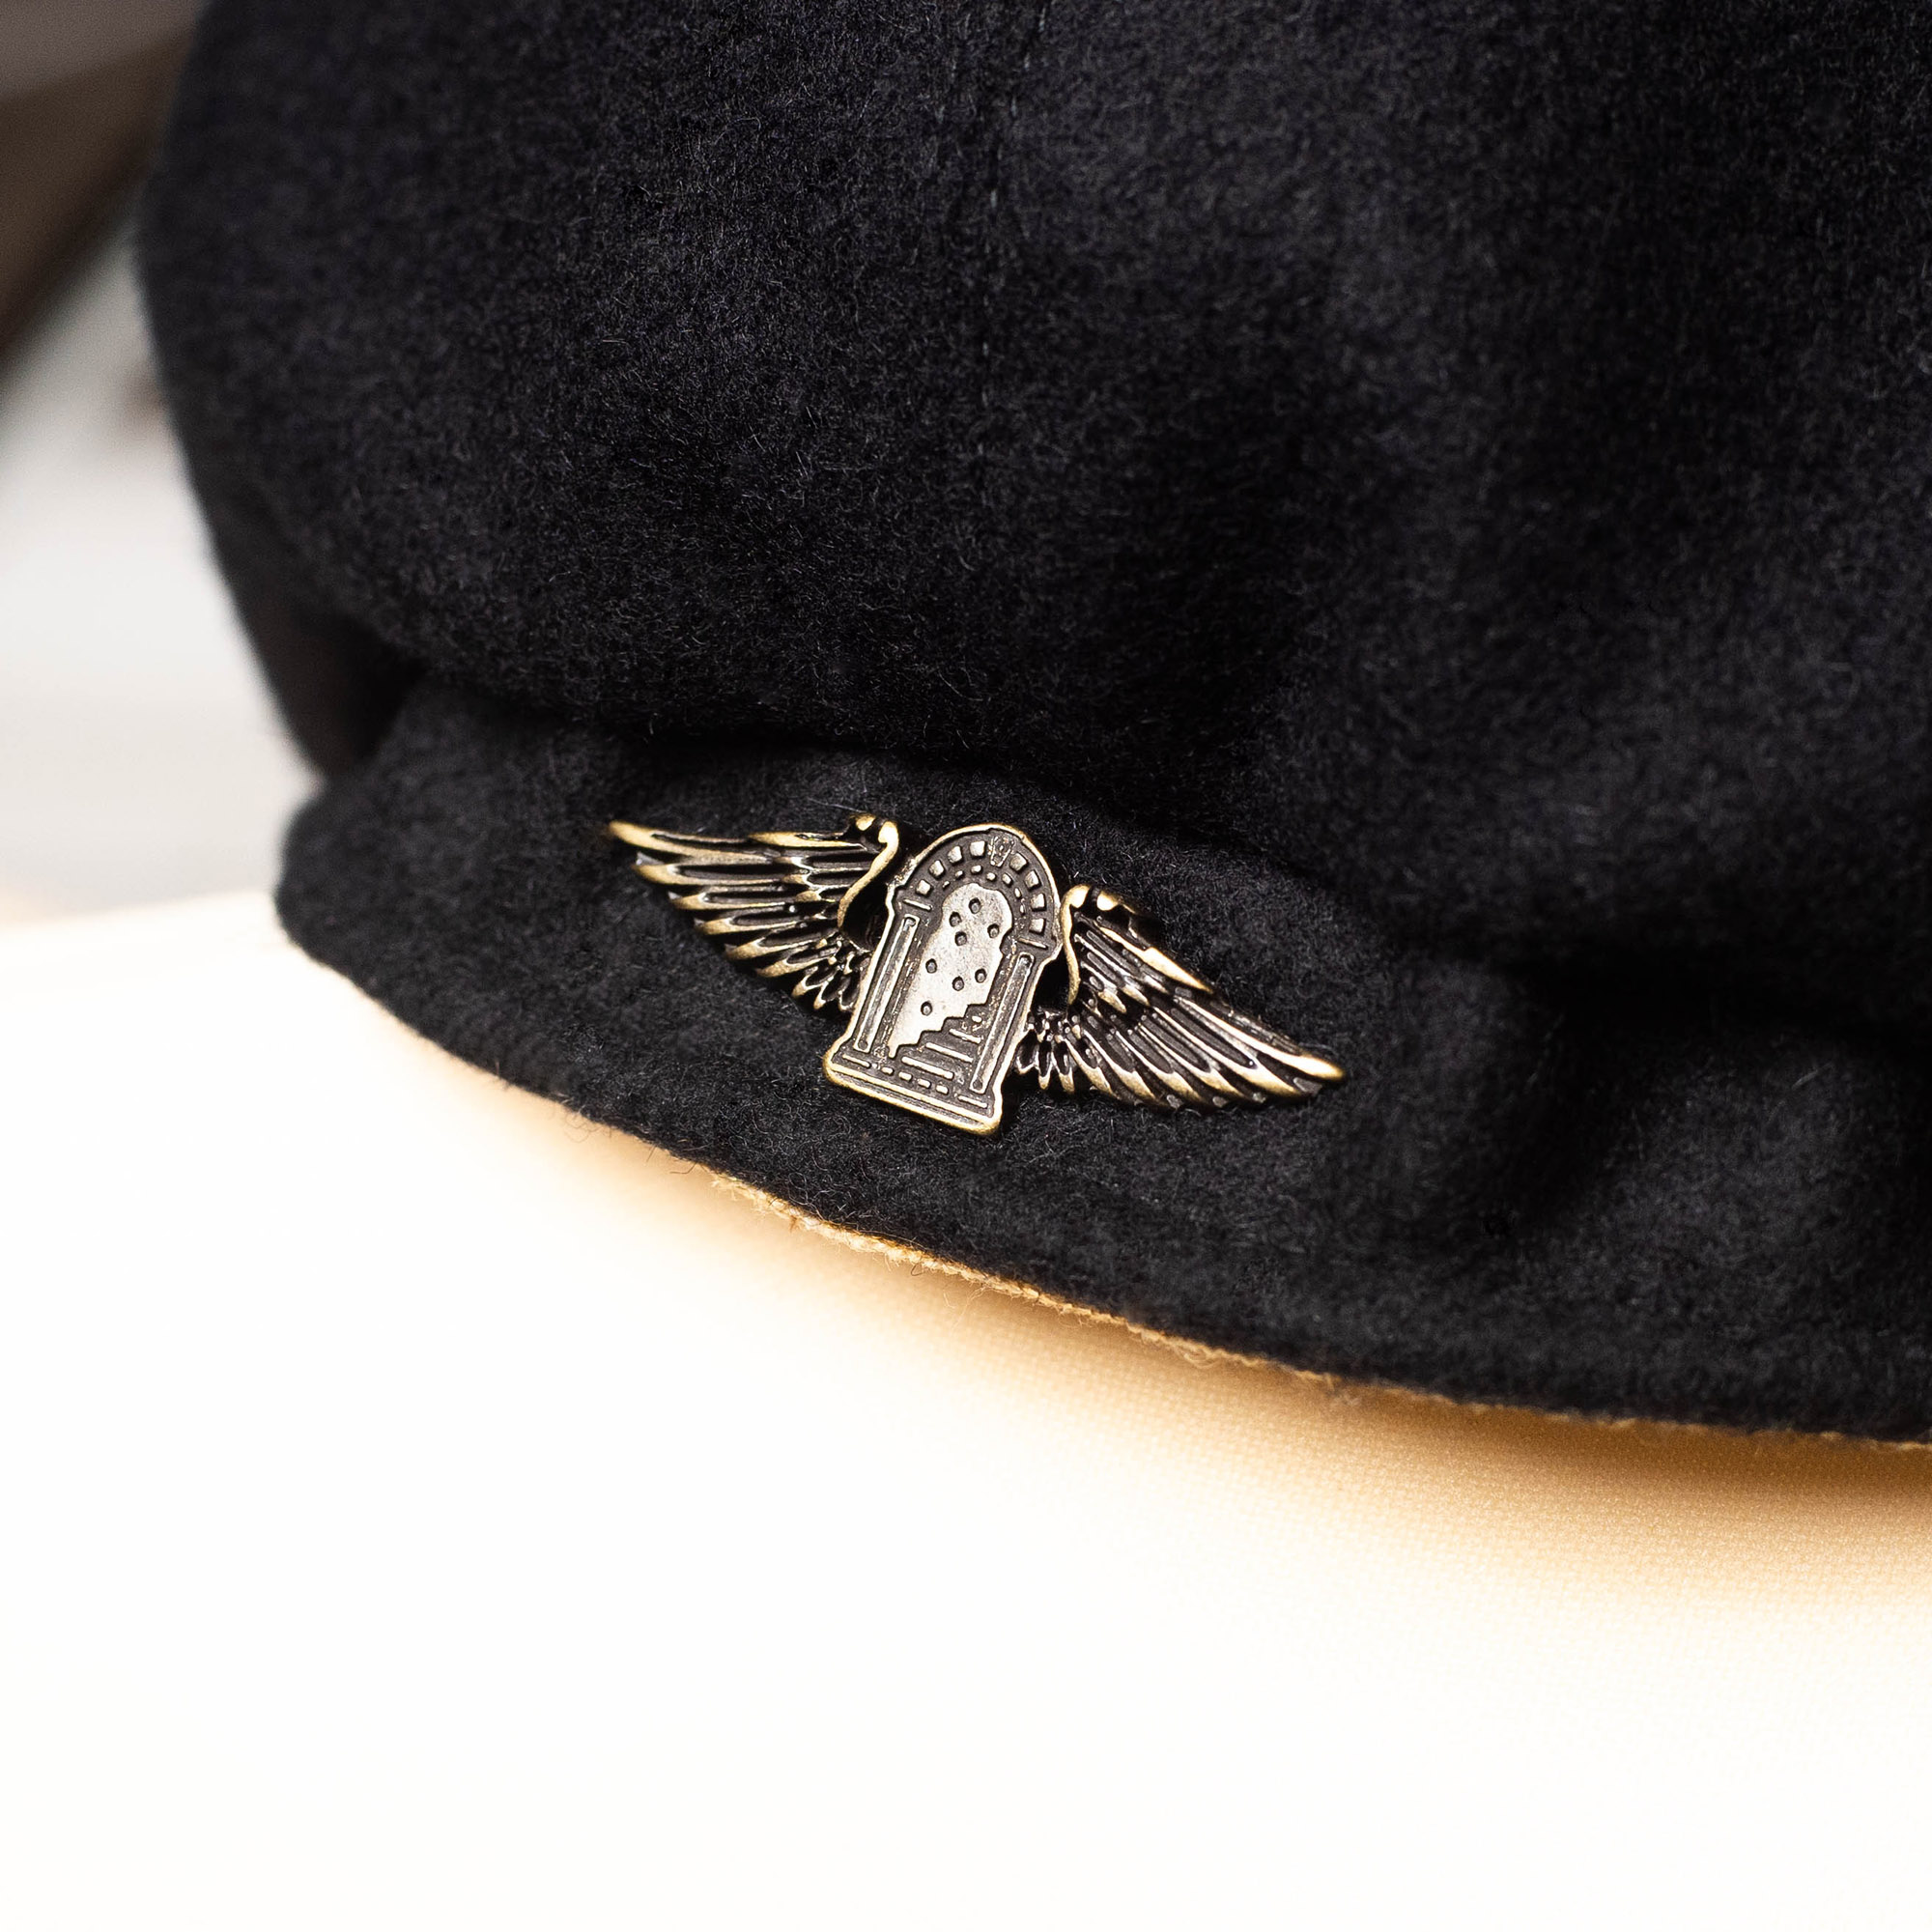 shangri-la-heritage-outlaw-navy-blue-wool-8-panel-riders-cap-still-life-logo